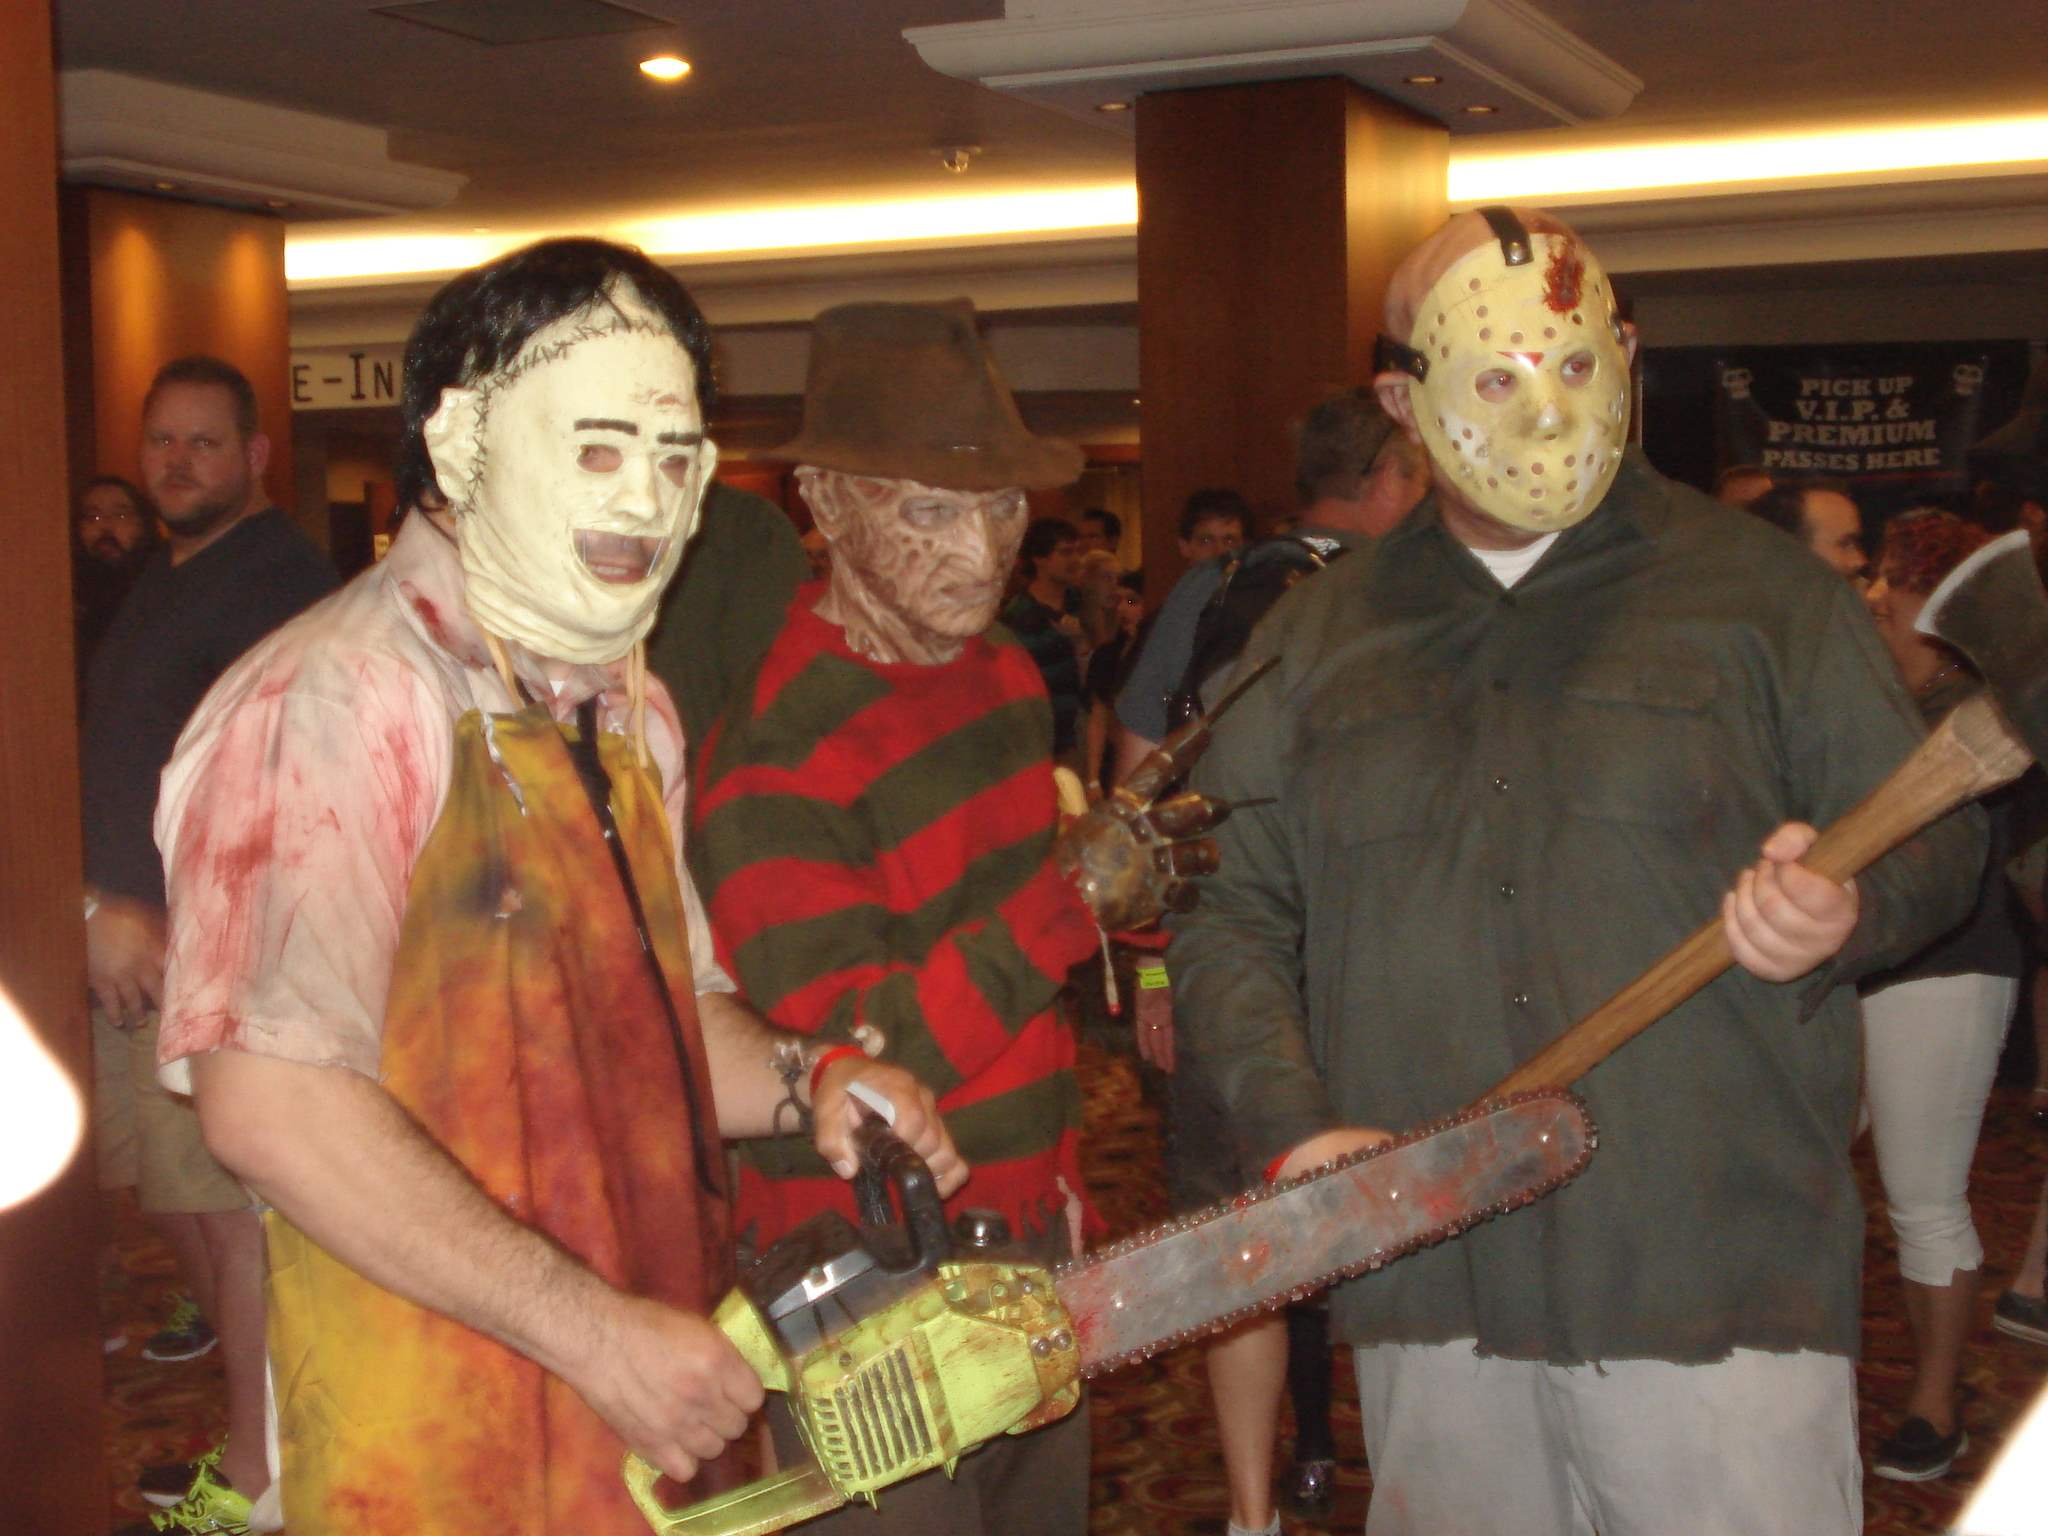 Cosplayers dressed as Leatherface, Freddy Krueger, and Jason Voorhees pose for pictures at Texas Frightmare Weekend